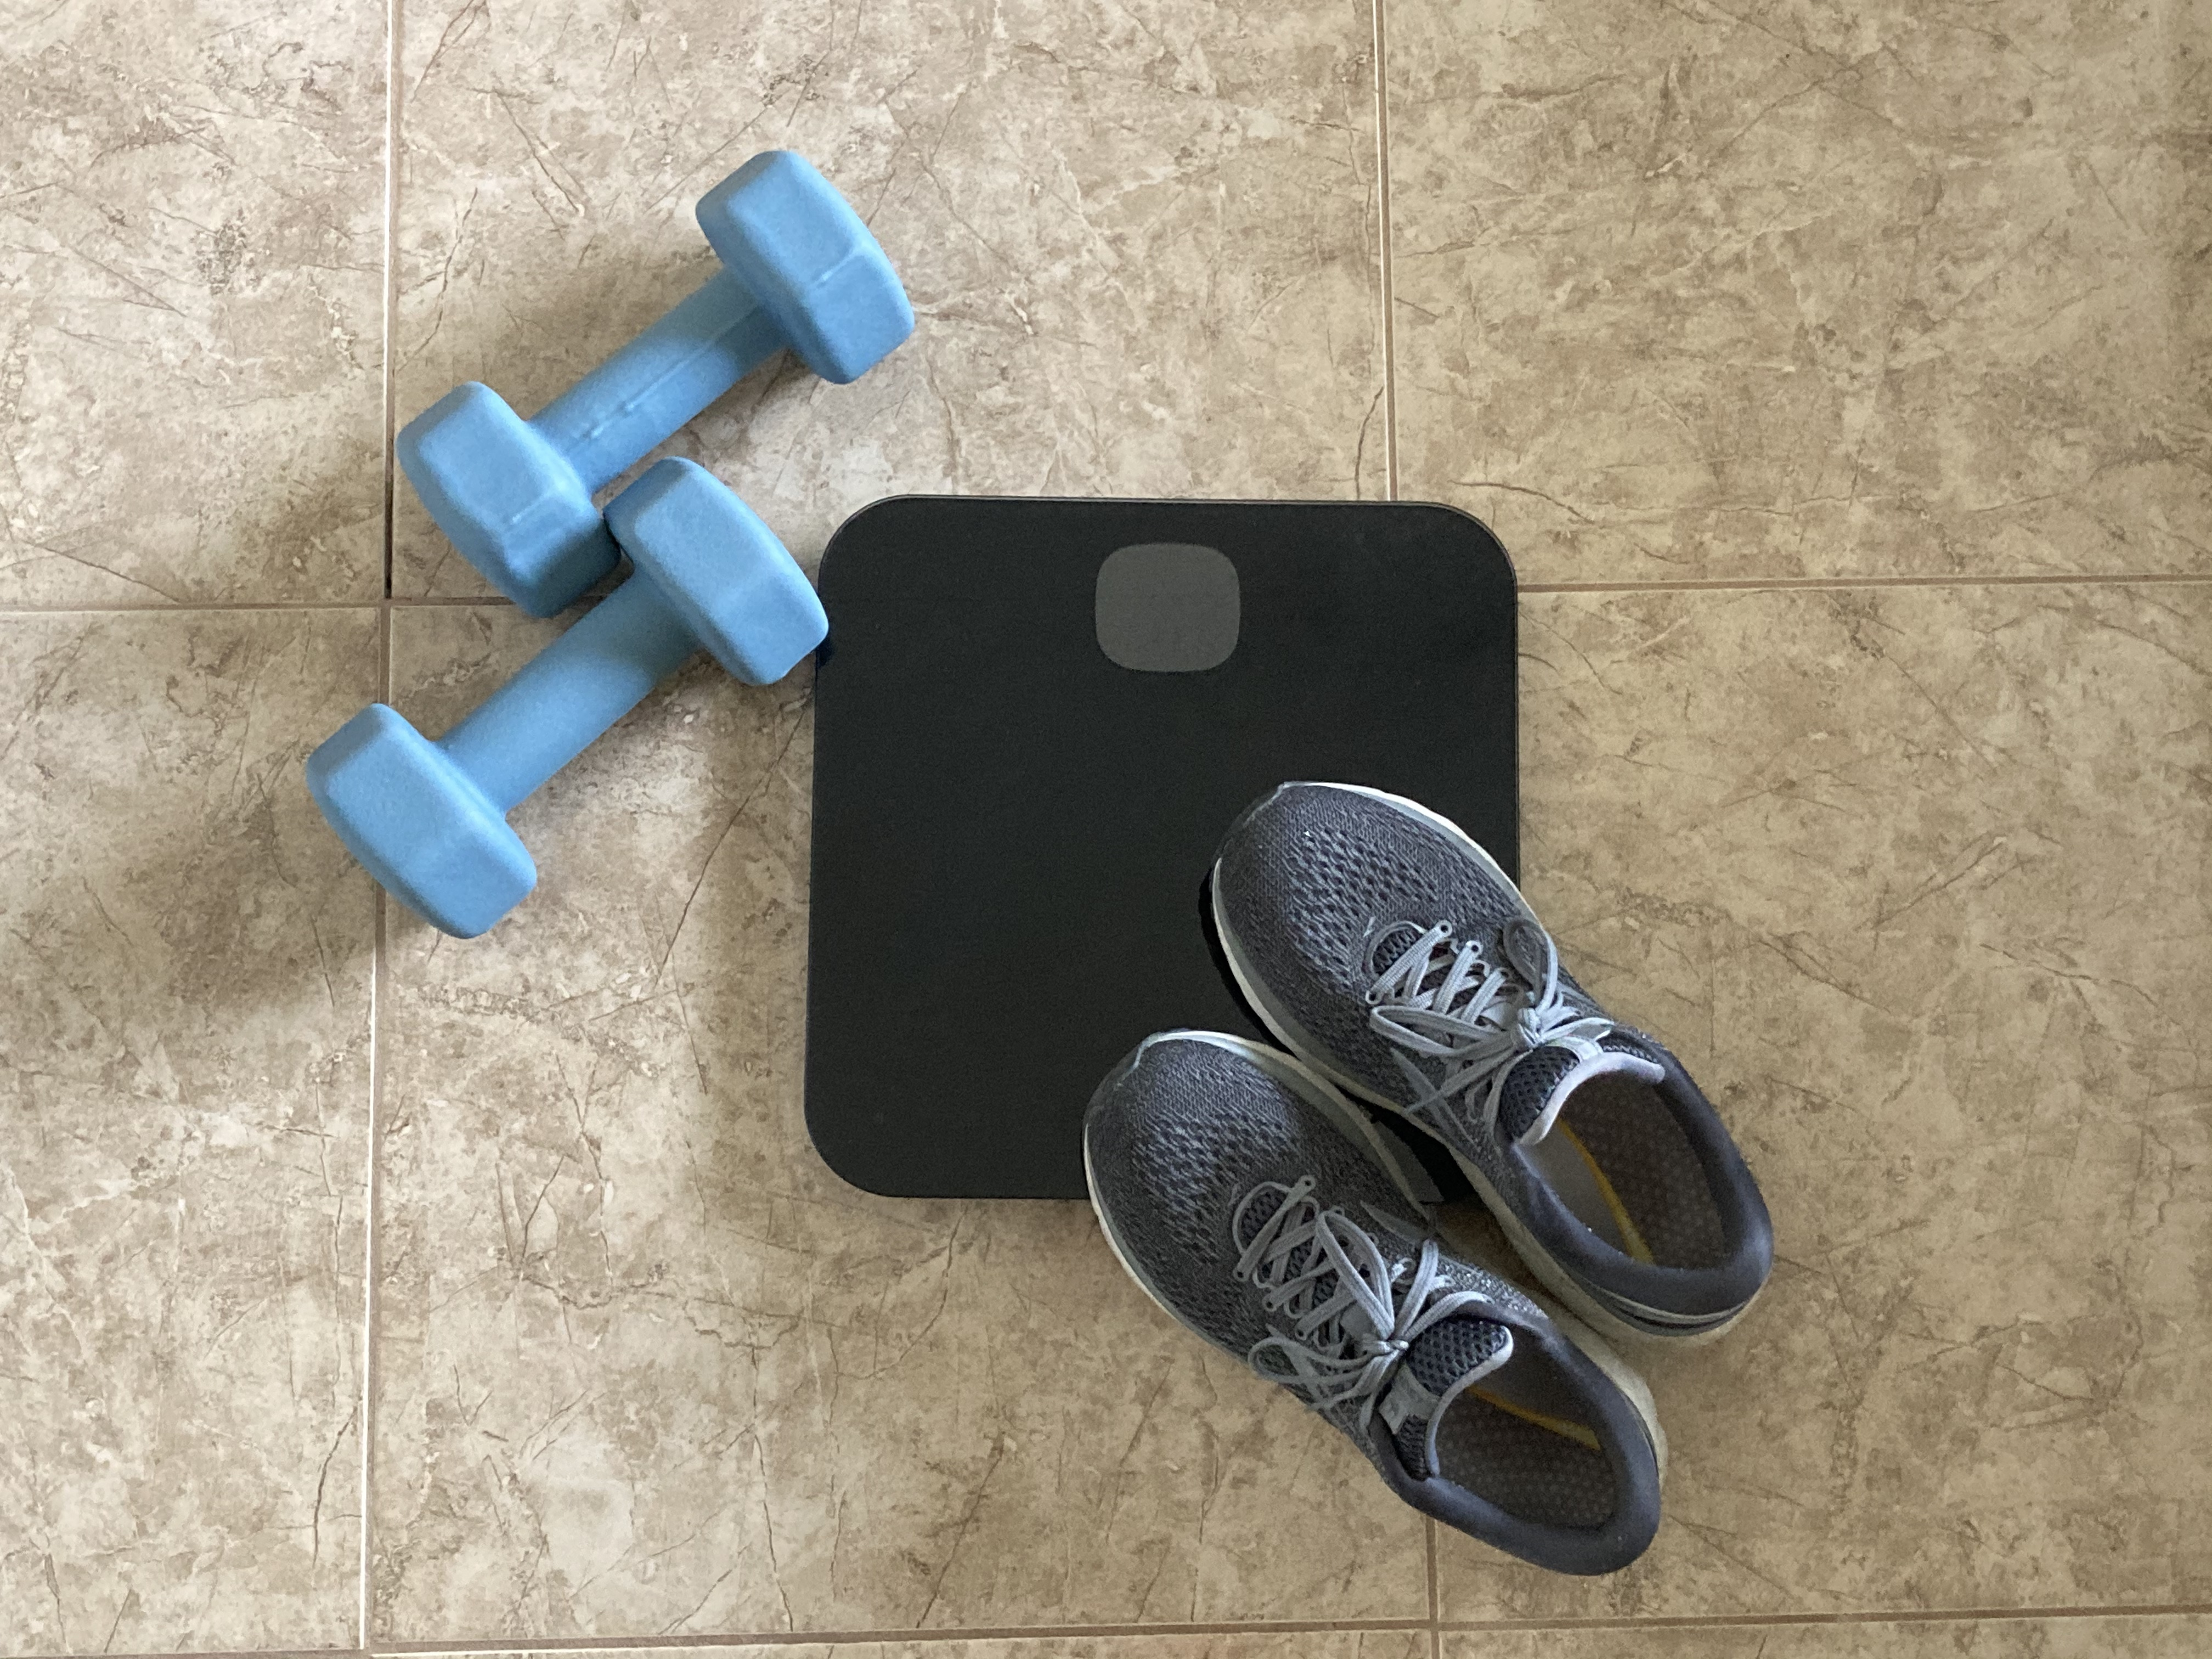 Getting back on track with my fitness goals, showing my scale and dumbbells.